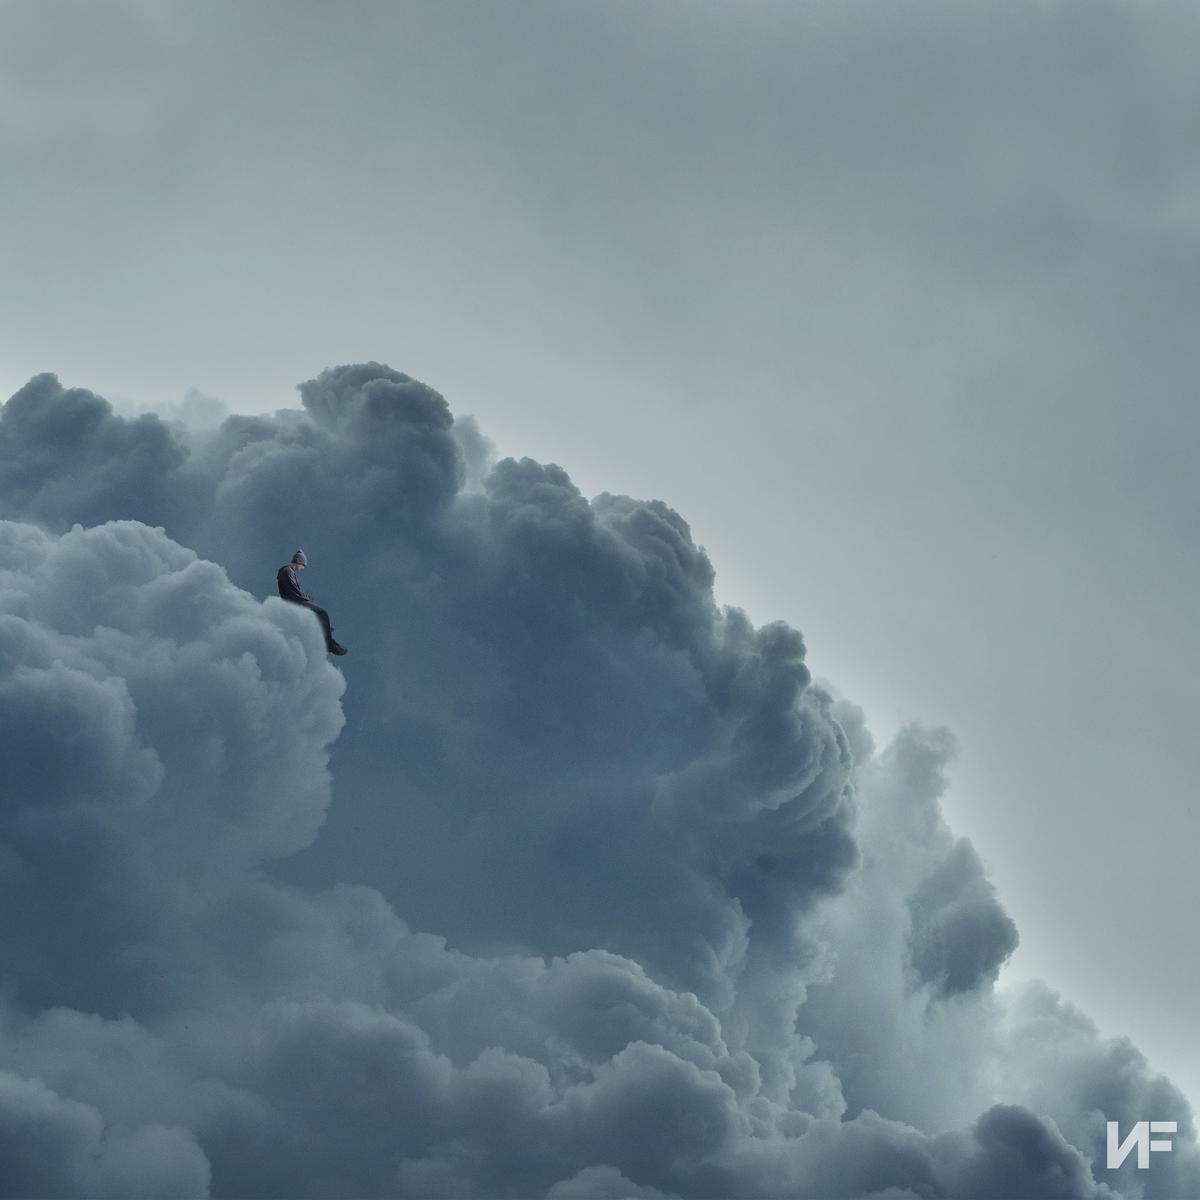 NF - CLOUDS (THE MIXTAPE) (Mixtape Review) - Ratings Game Music